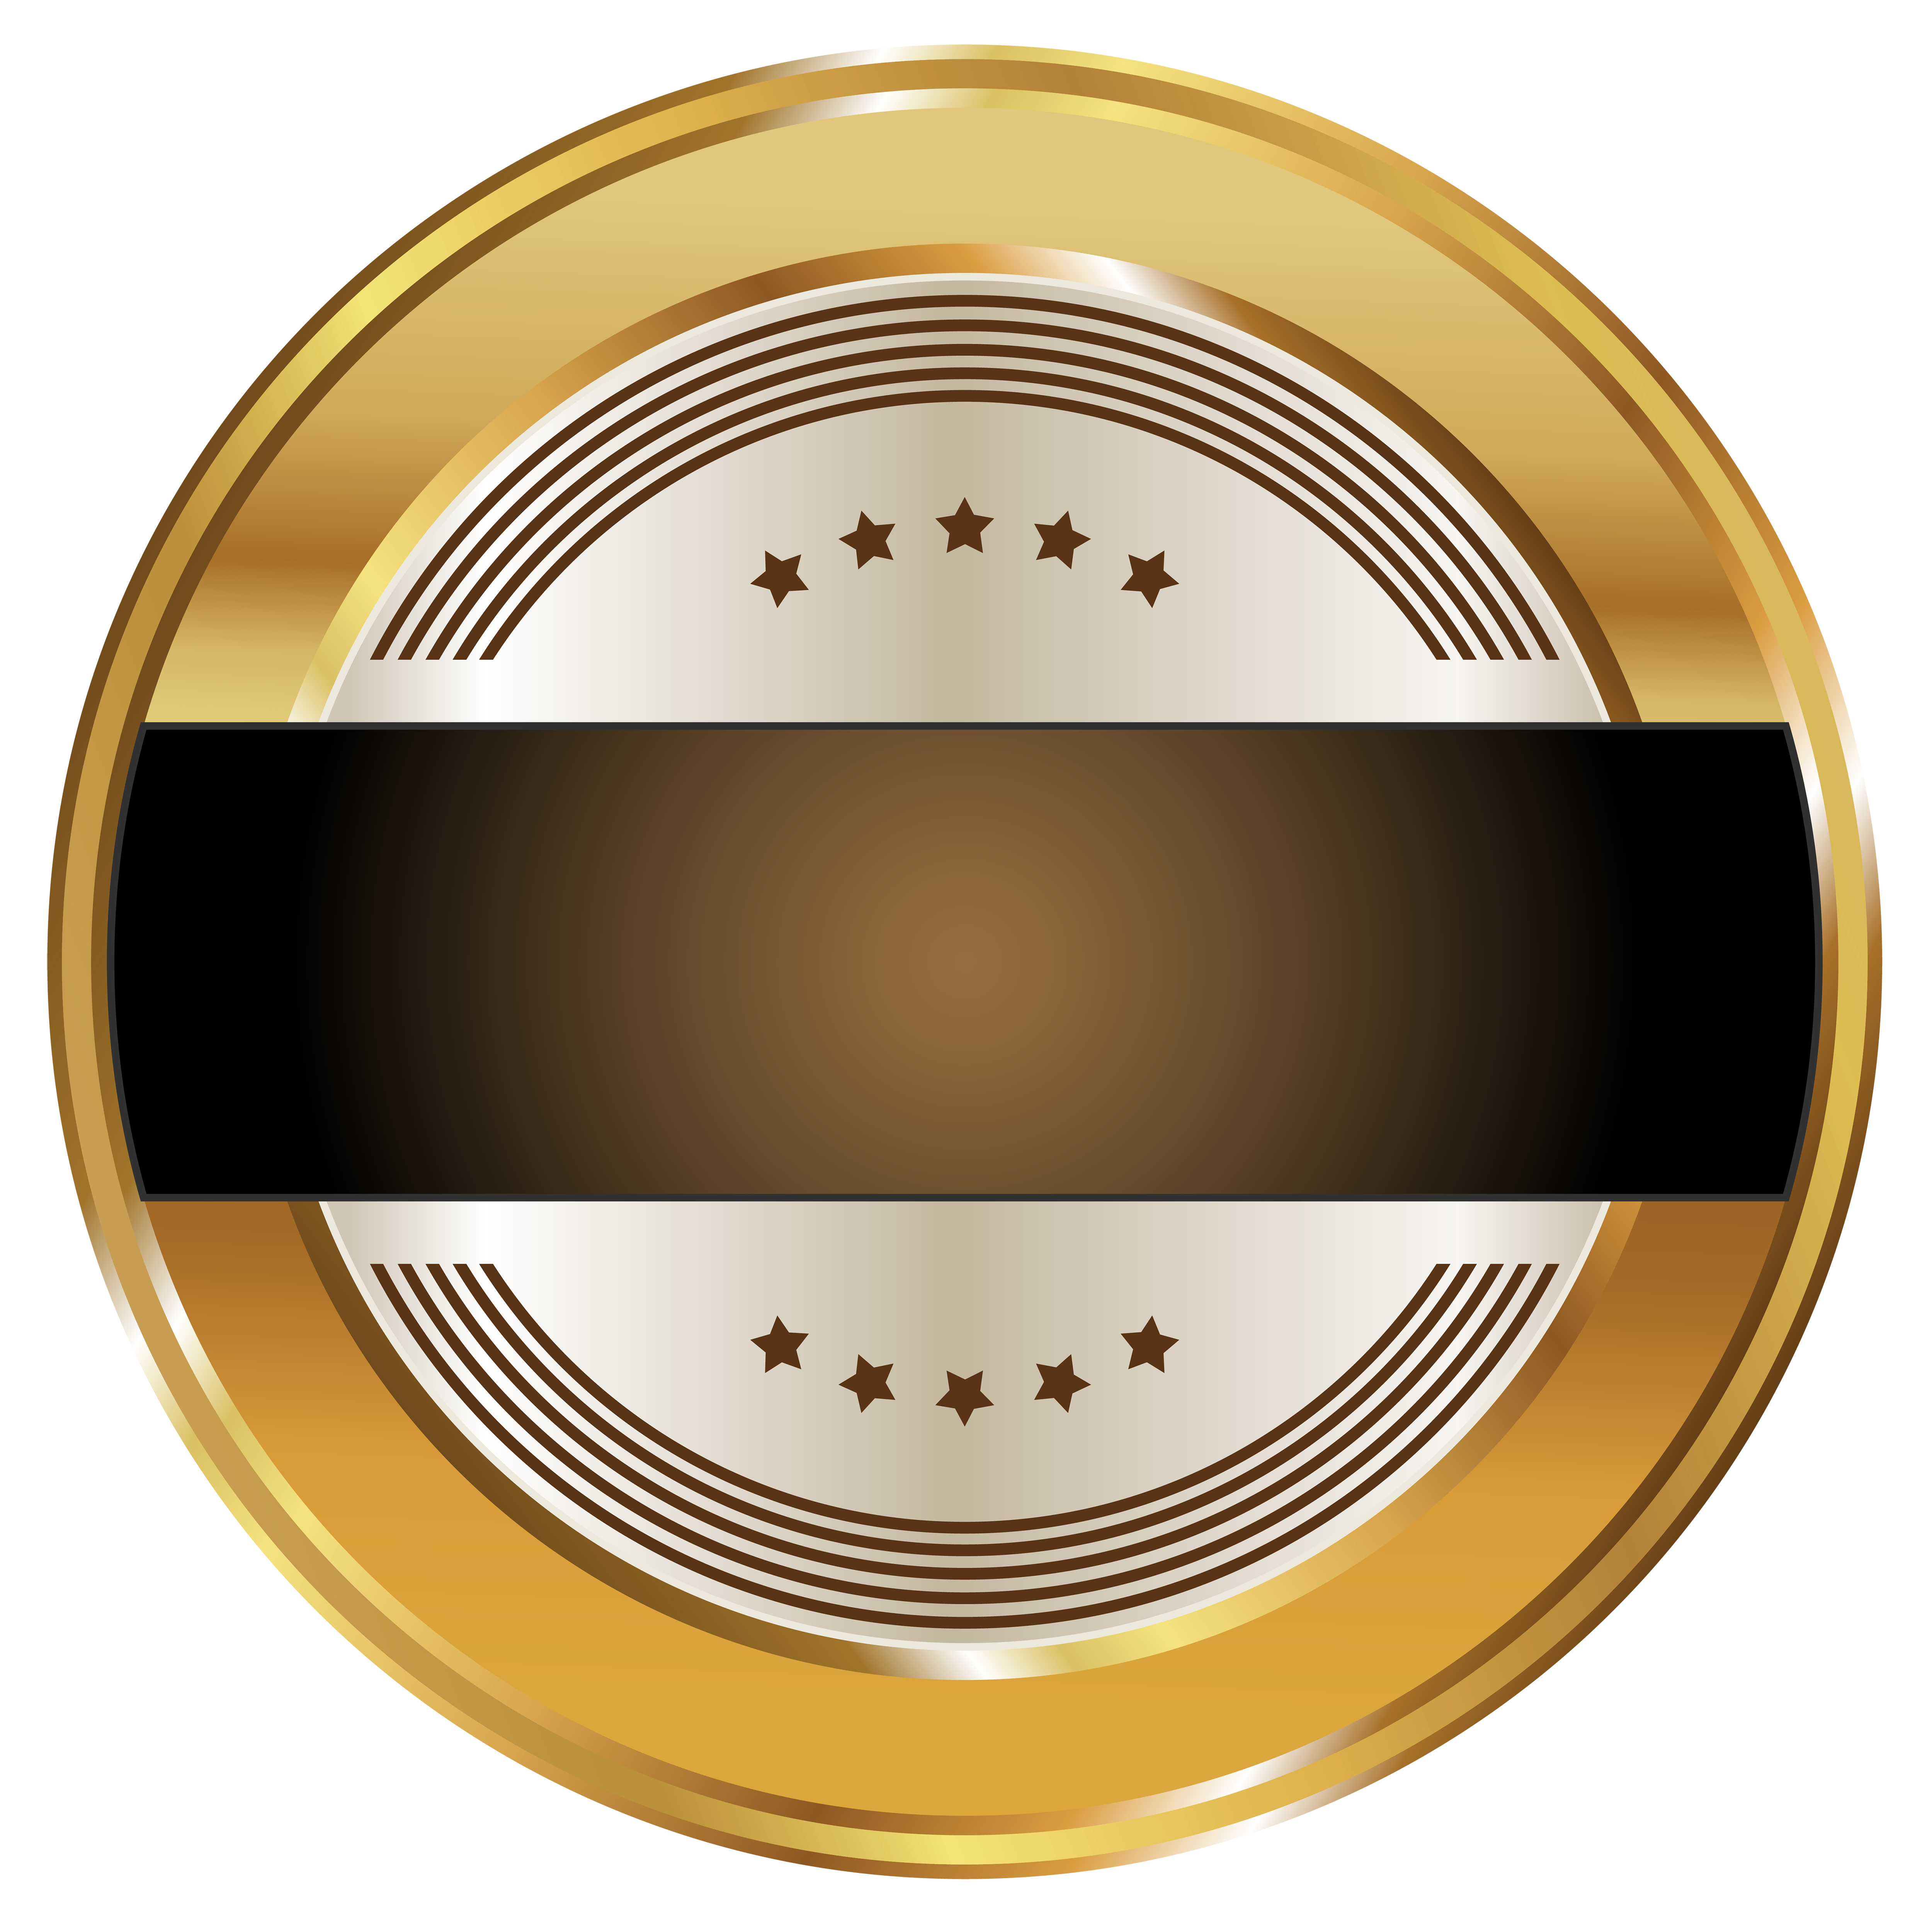 Badge design png. Seal template clipart image